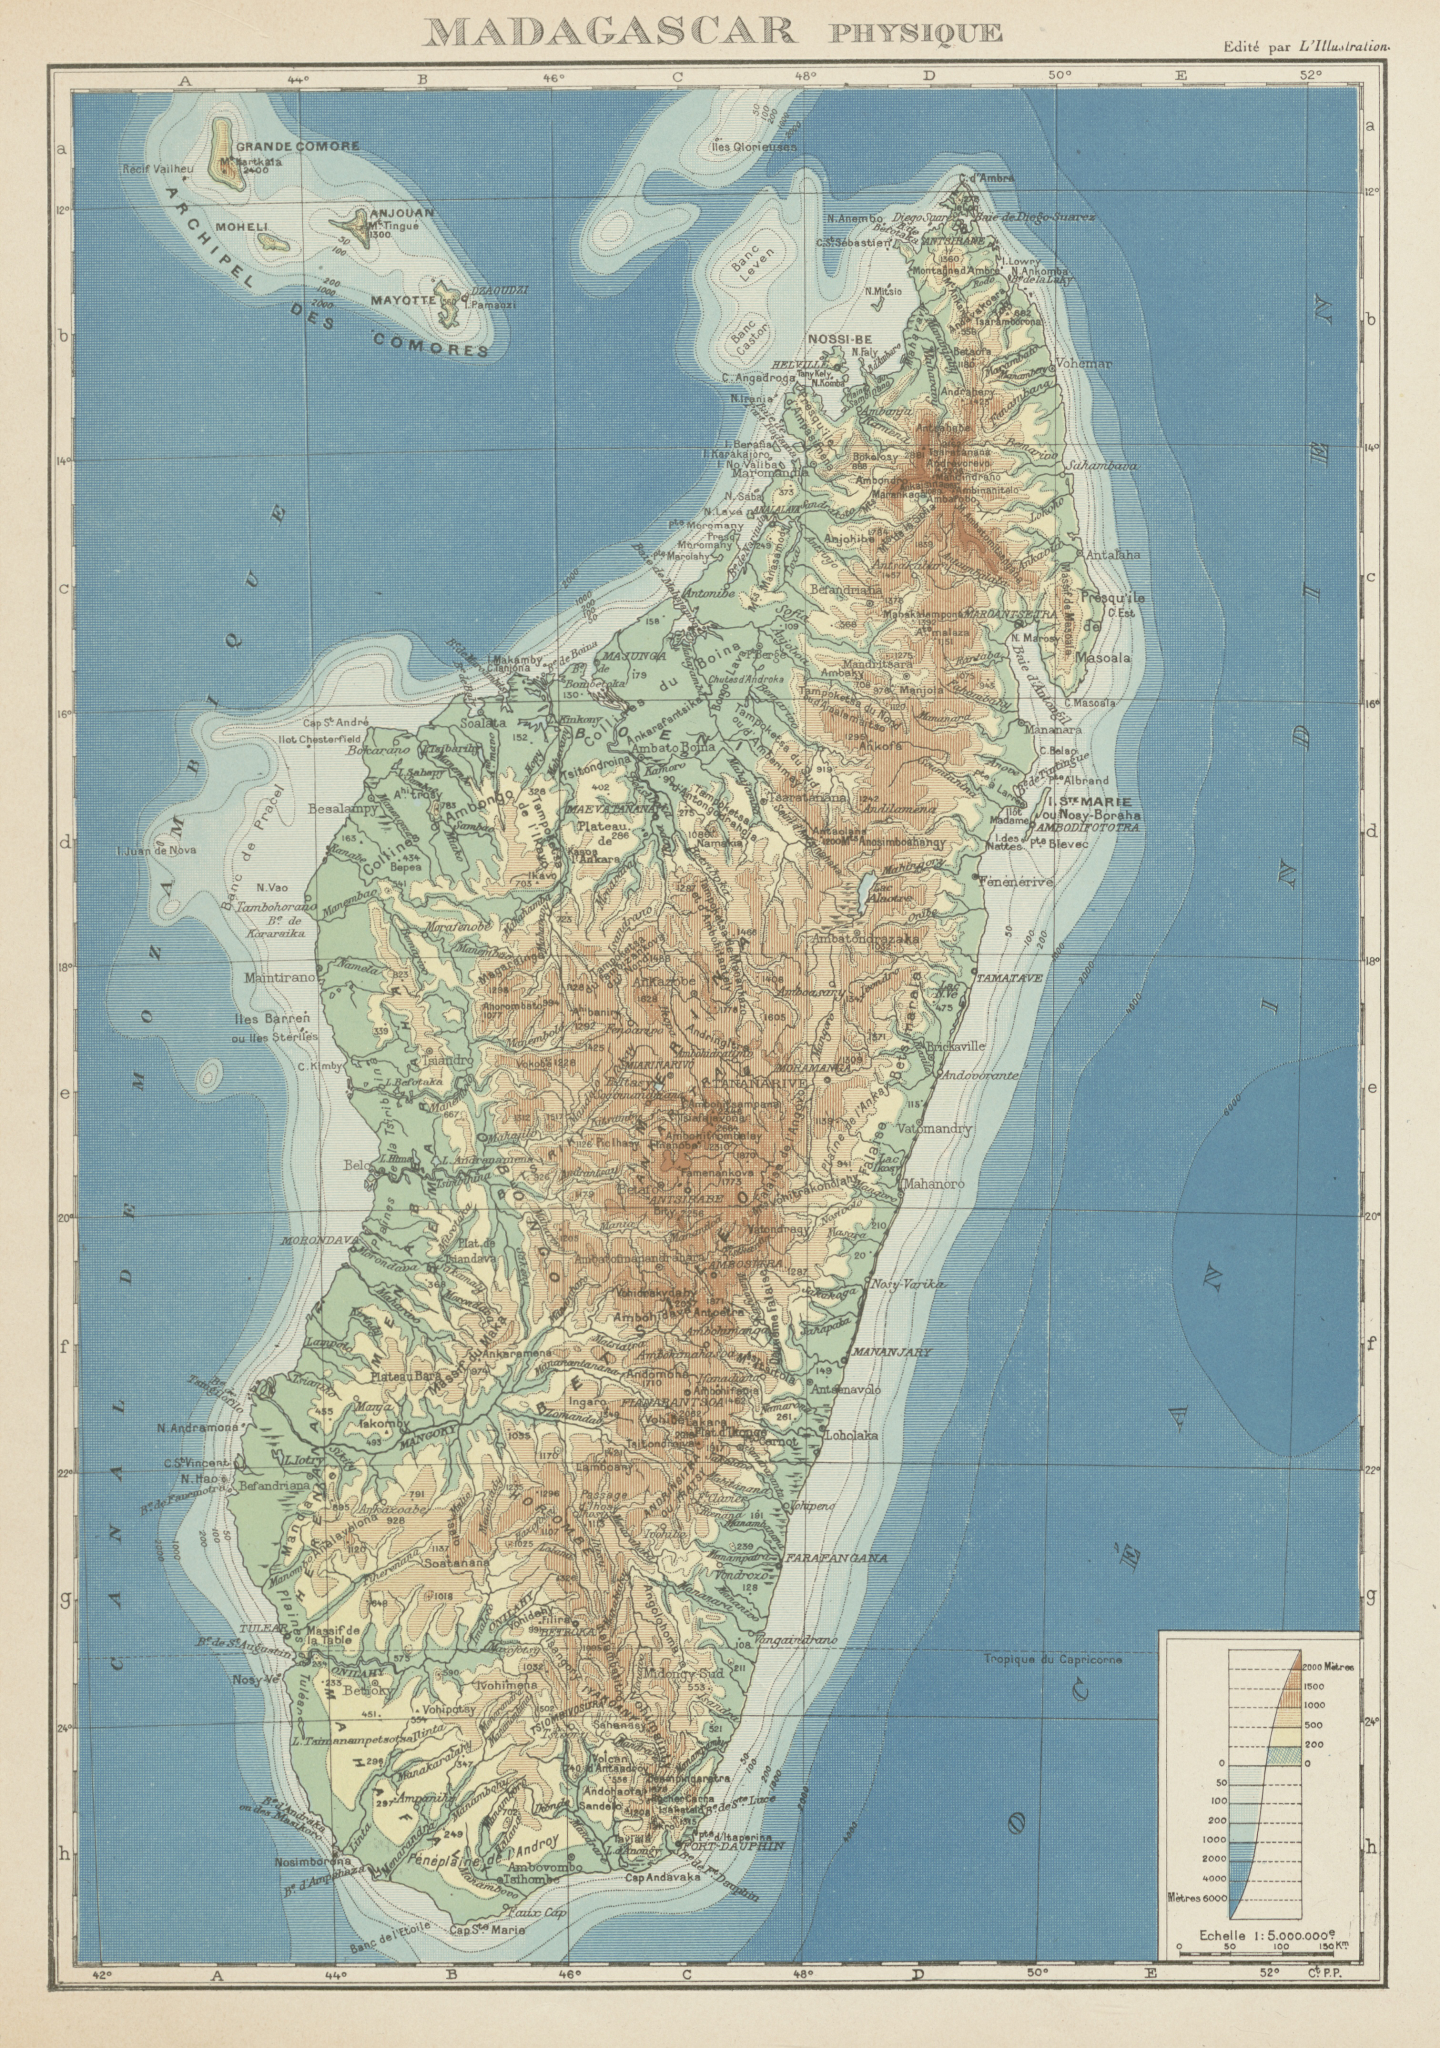 Associate Product COLONIAL MADAGASCAR. Physique physical. Comoros & Mayotte 1929 old vintage map